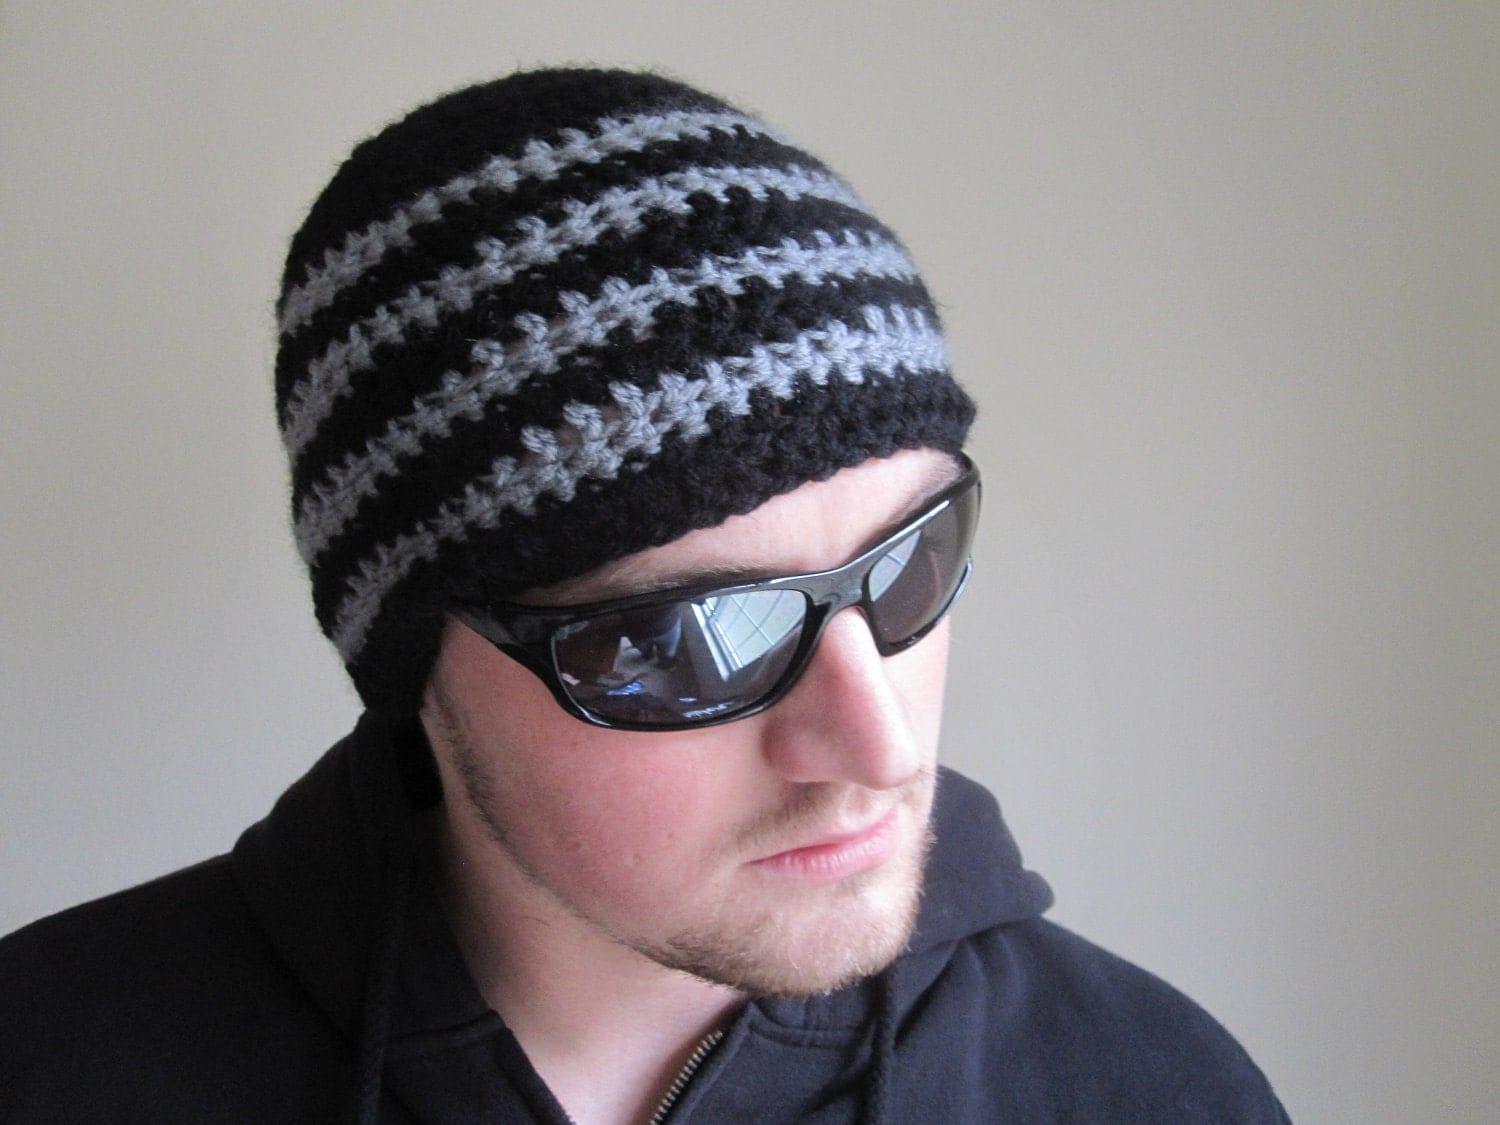 il 170x135.285587216 Etsy Treasury: Hot Guys in Crochet Hats